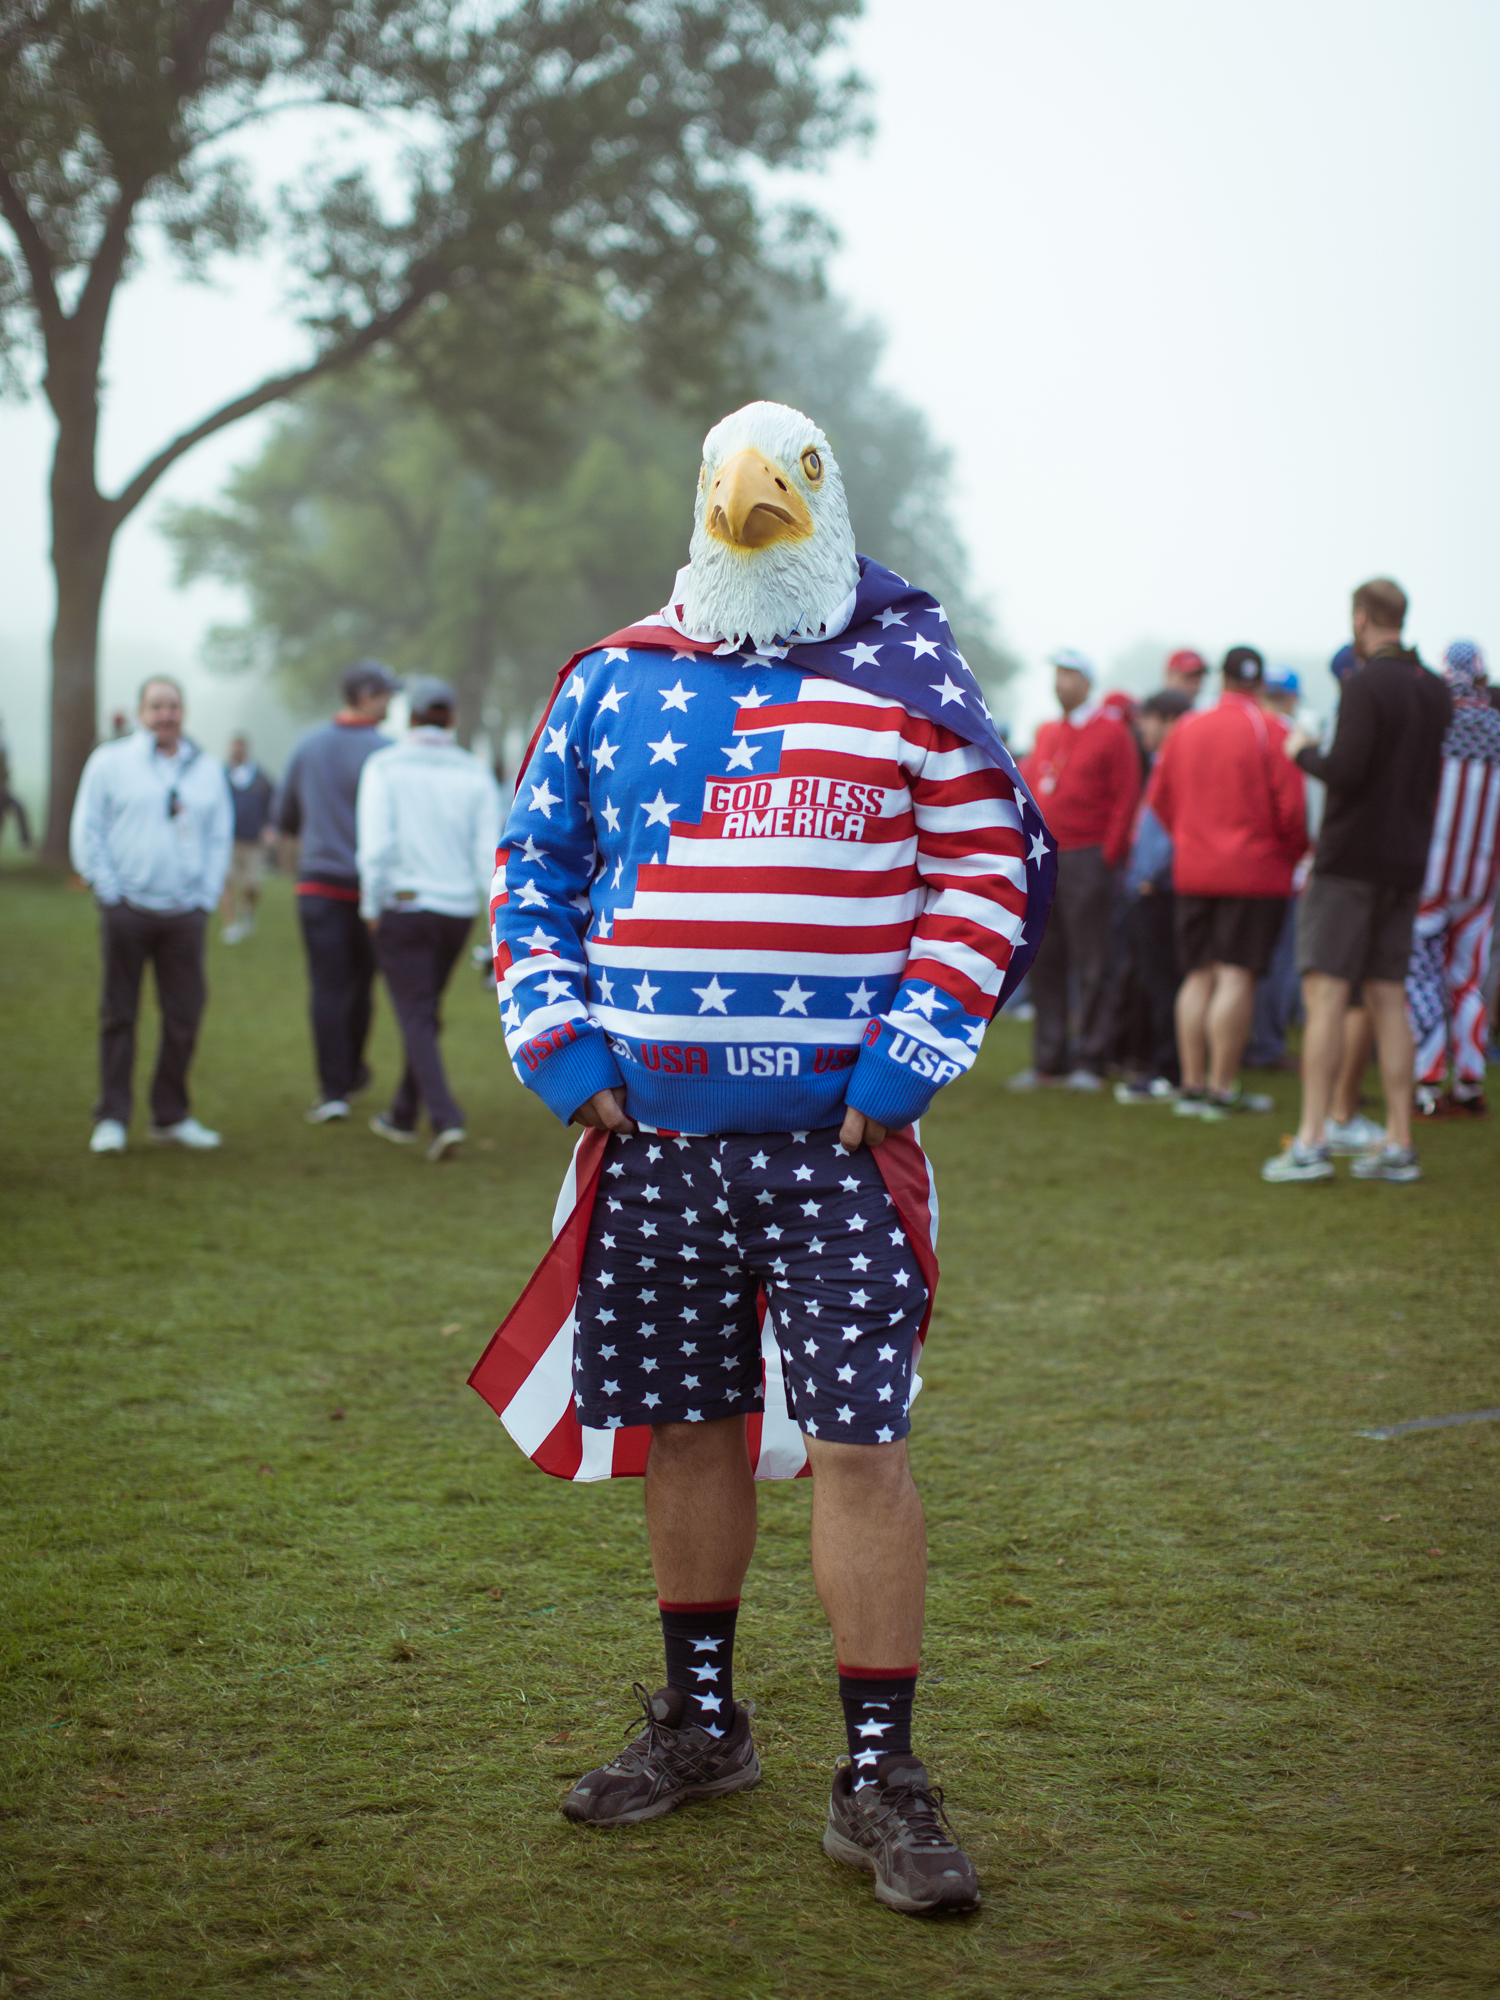 Ryder_Cup_2016_MatchDay1_0012.jpg